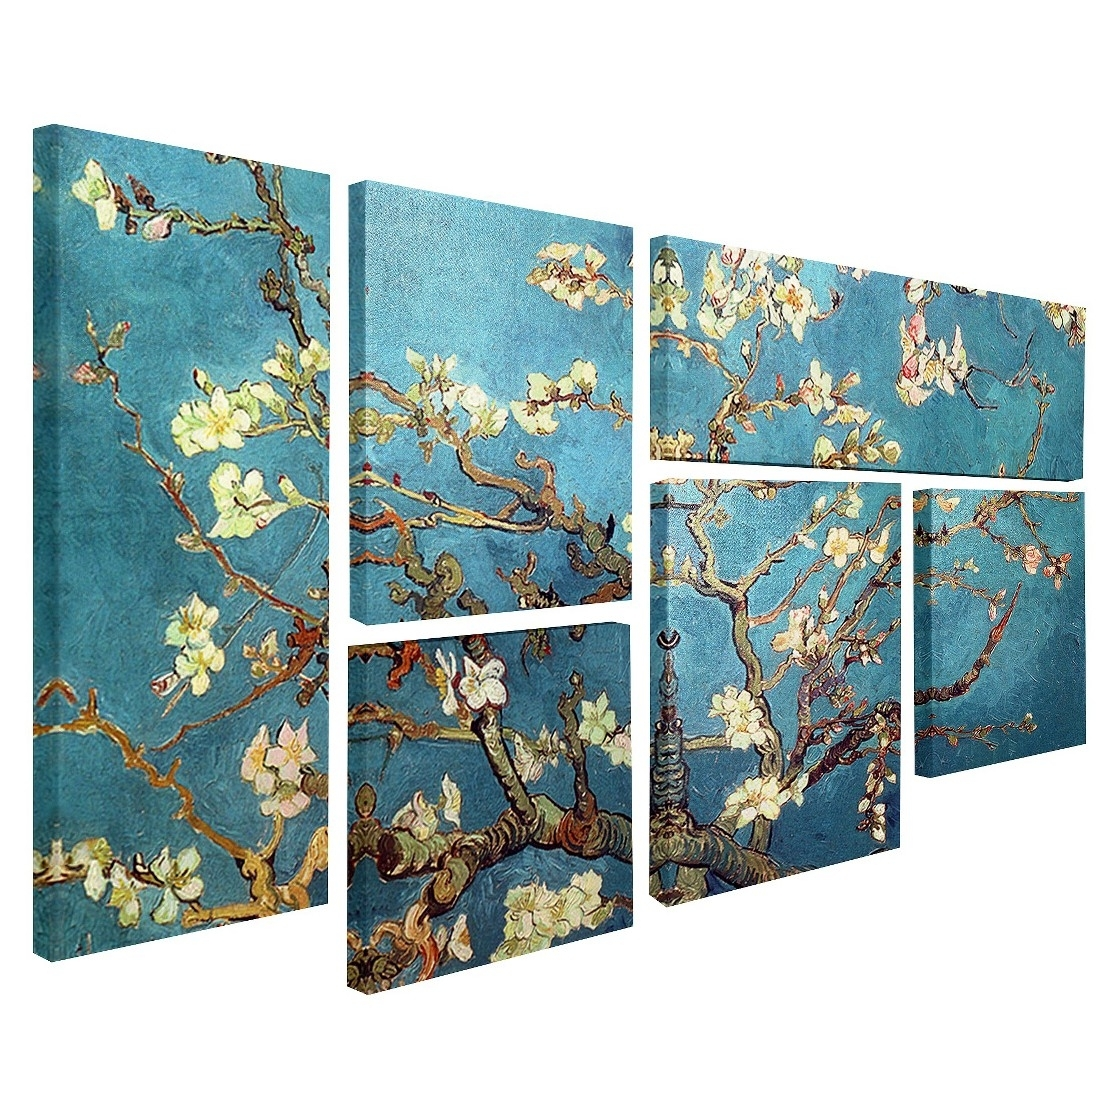 Vincent Van Gogh Multi Piece Wall Art – 'almond Blossoms', | Van Regarding 2017 Almond Blossoms Vincent Van Gogh Wall Art (Gallery 4 of 20)